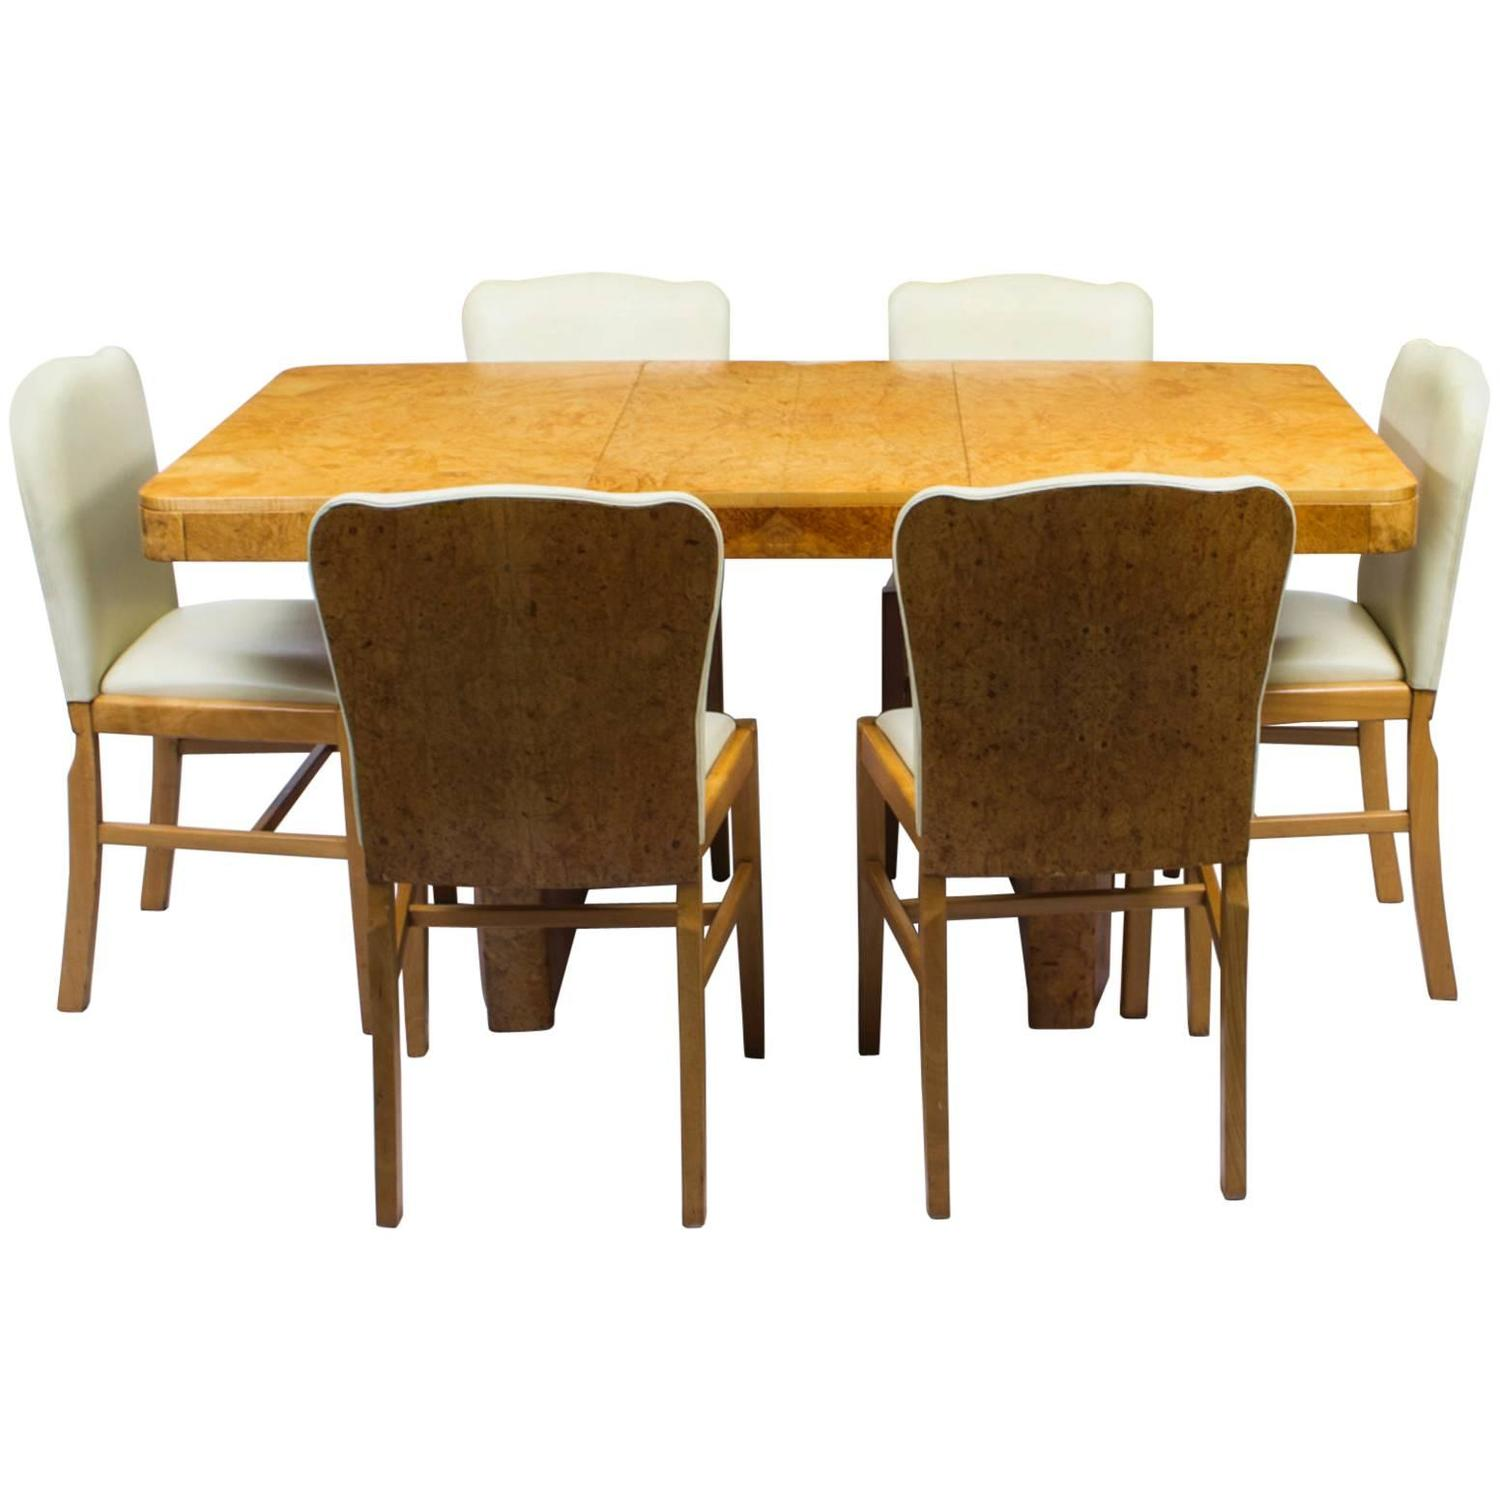 Antique Art Deco Birdu0027s Eye Maple Dining Table And Six Chairs At 1stdibs